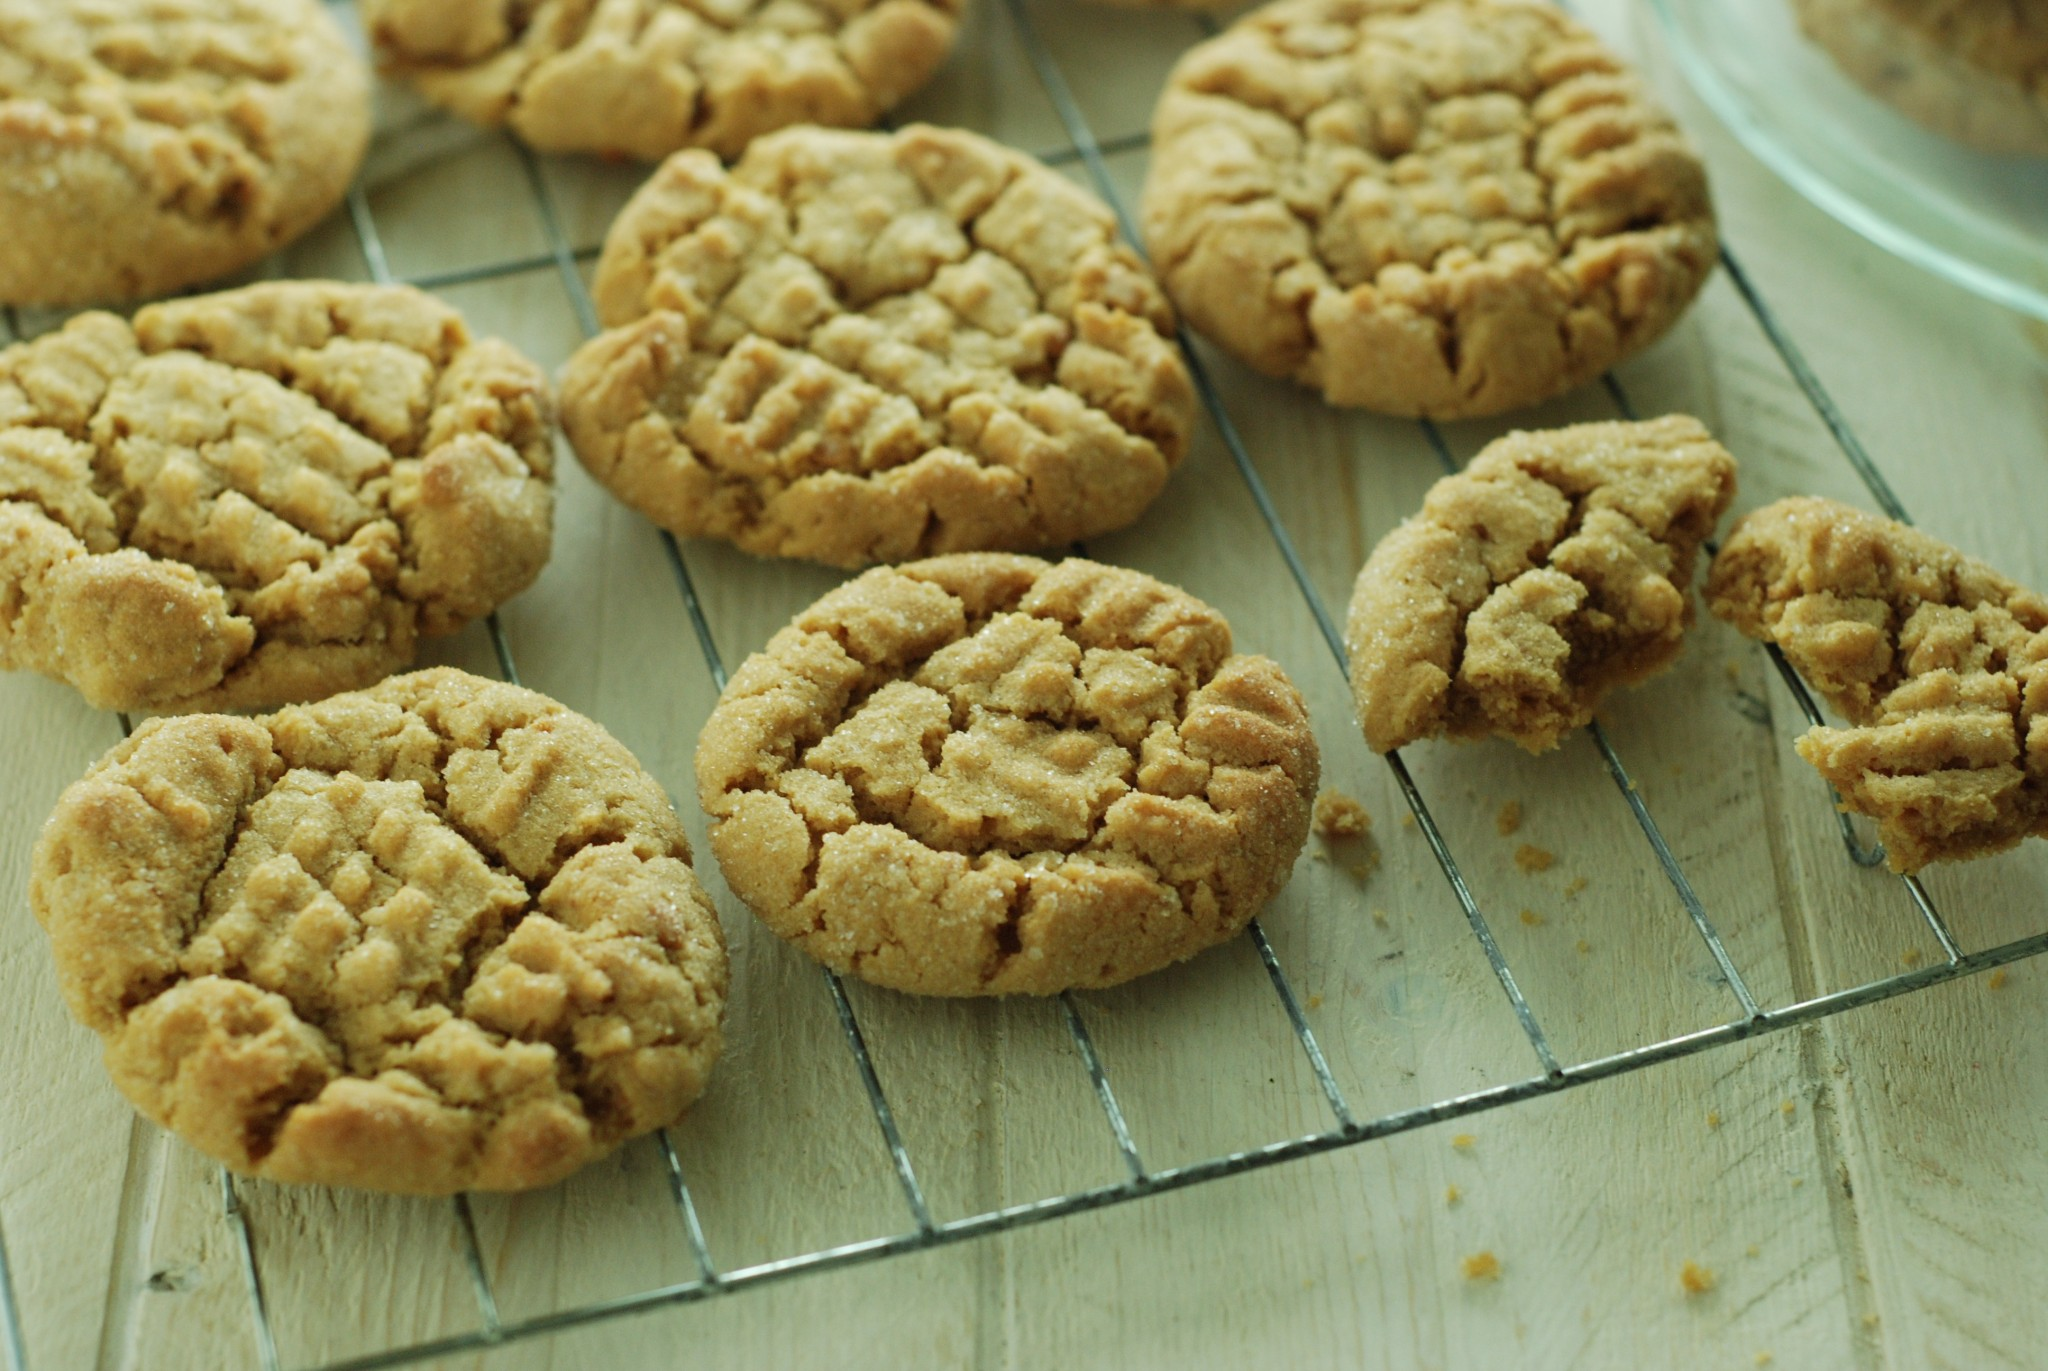 there's nothing quite like baking your own cookies, and this gluten free peanut butter cookie recipe can bring back all those warm and happy childhood memories of sitting in the kitchen dunking a warm cookie in to a glass of milk!